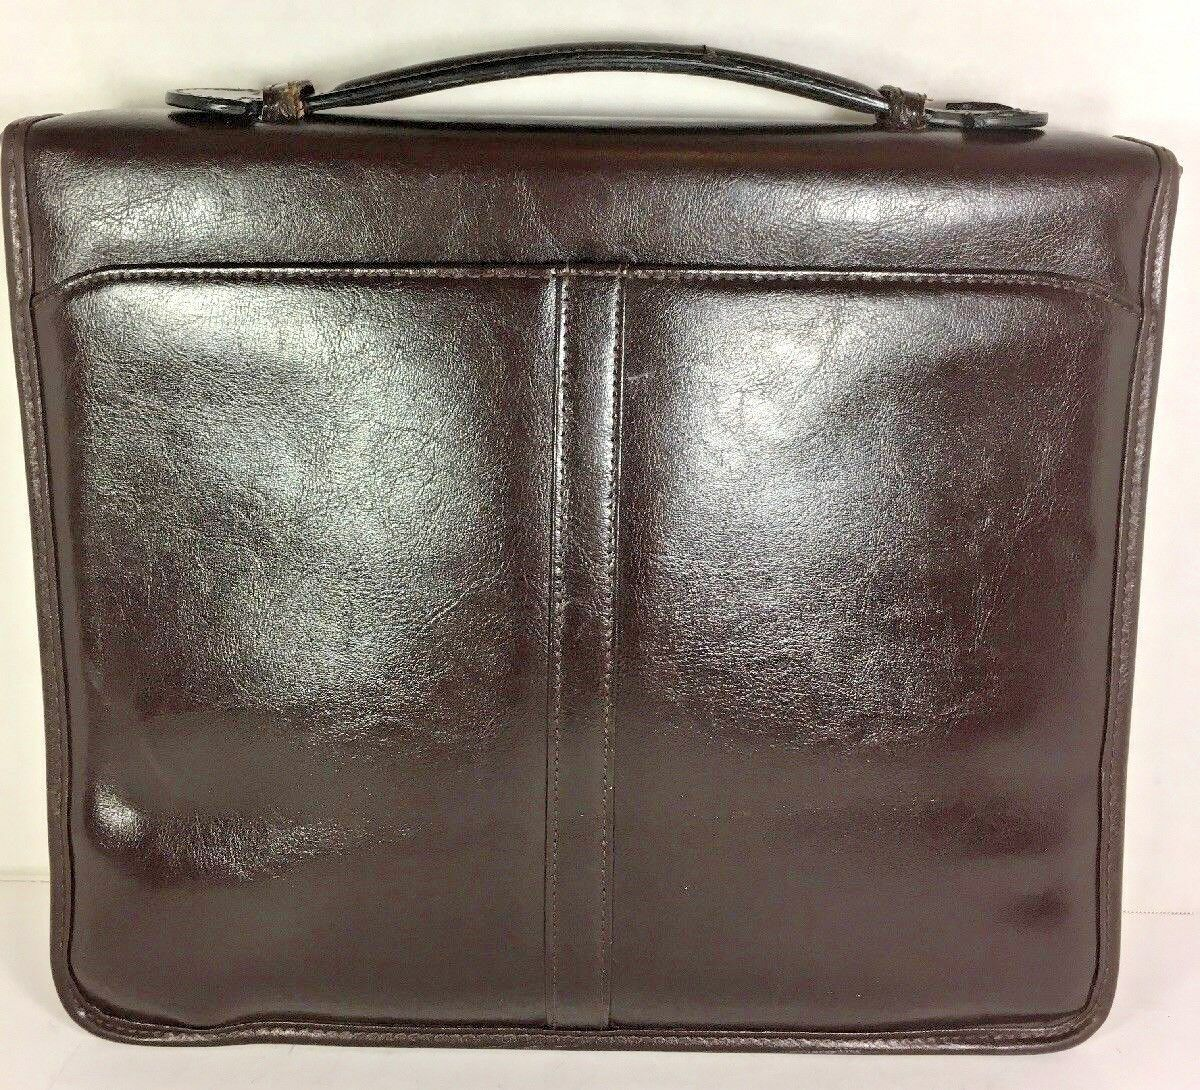 Avenues America Vintage Dark Brown Bonded Leather Zippered Folio Organizer